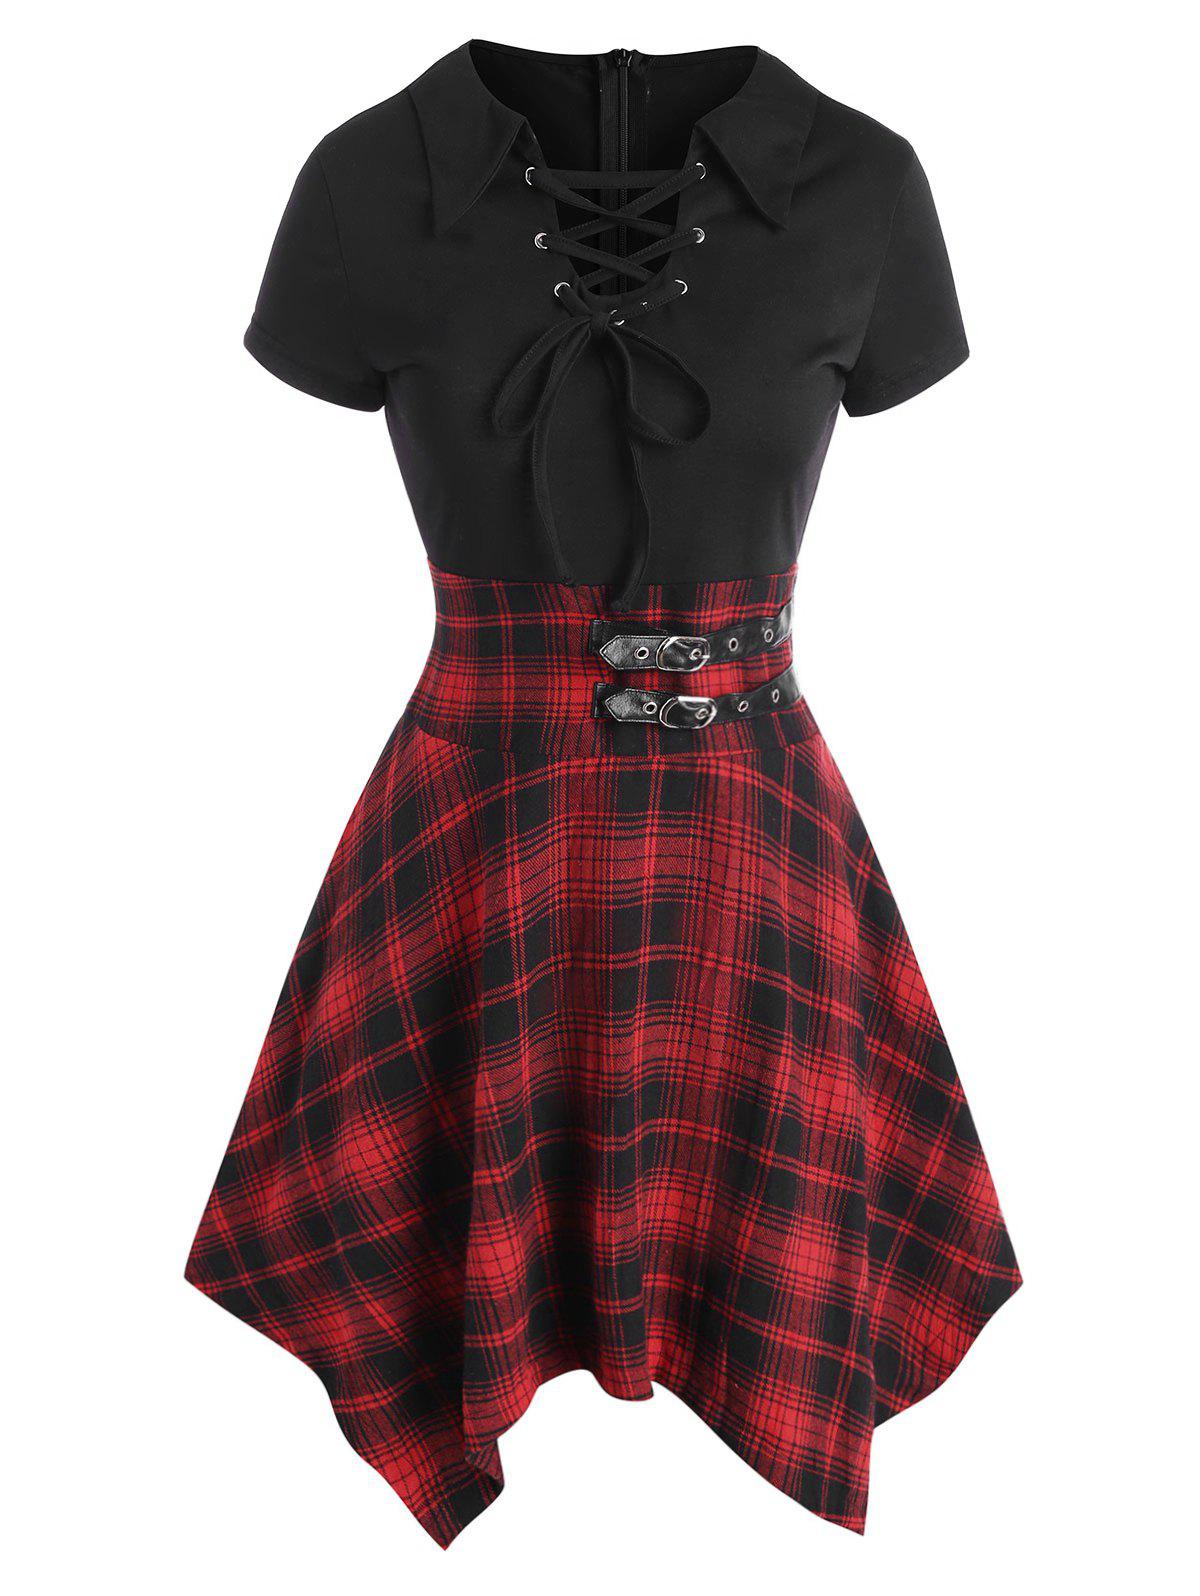 Buy Lace Up Plaid Buckle Embellished Handkerchief Dress